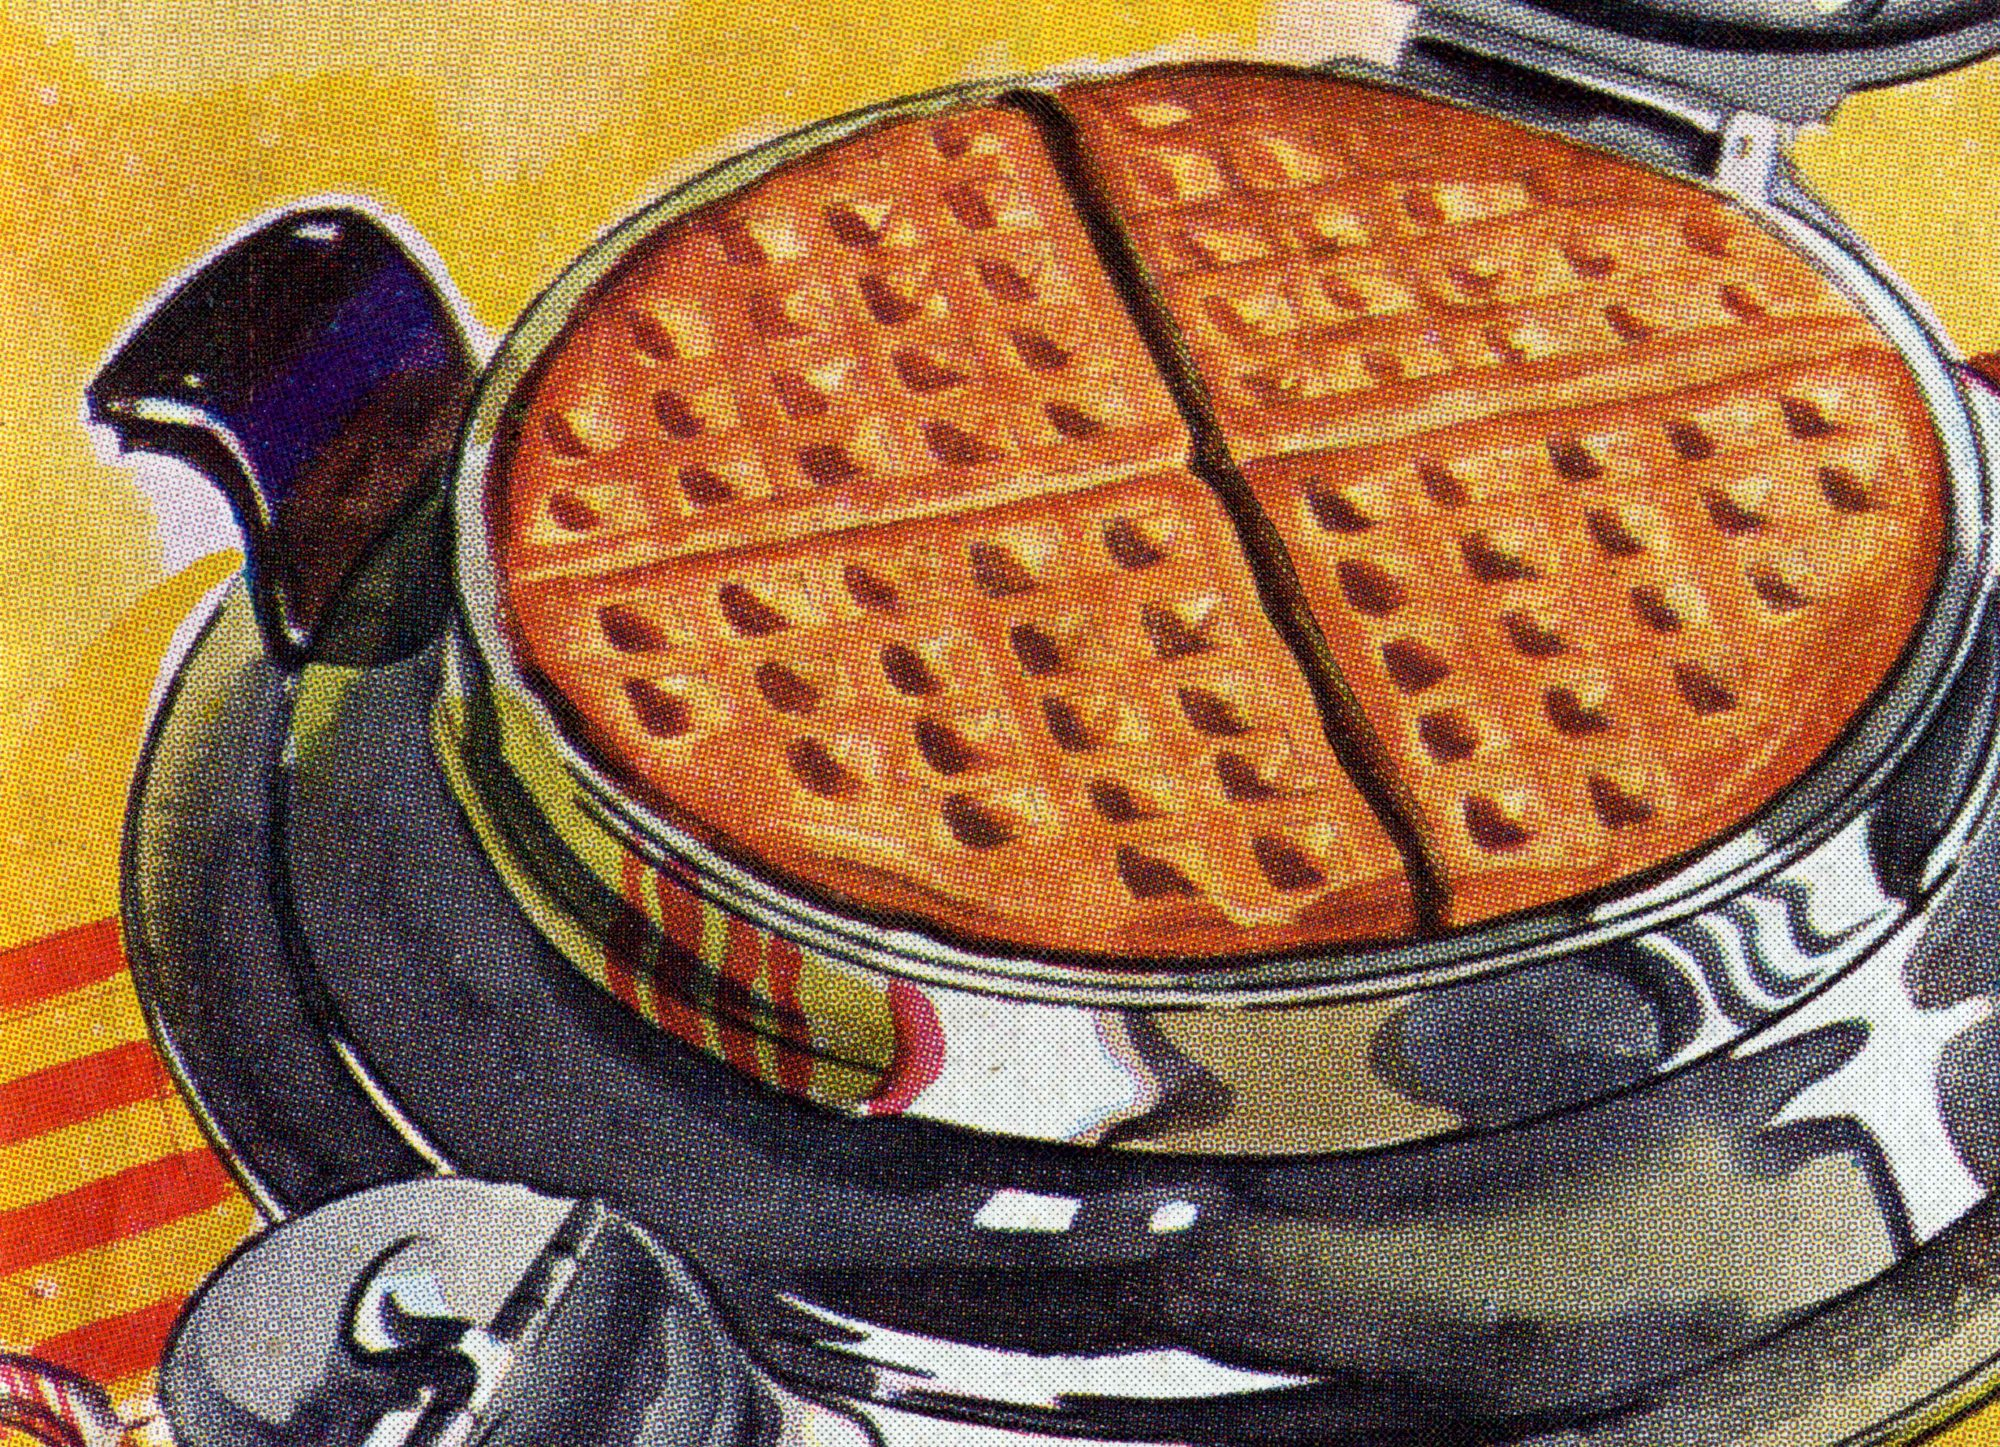 EC: The History of Waffle Irons Is Hot and Greasy